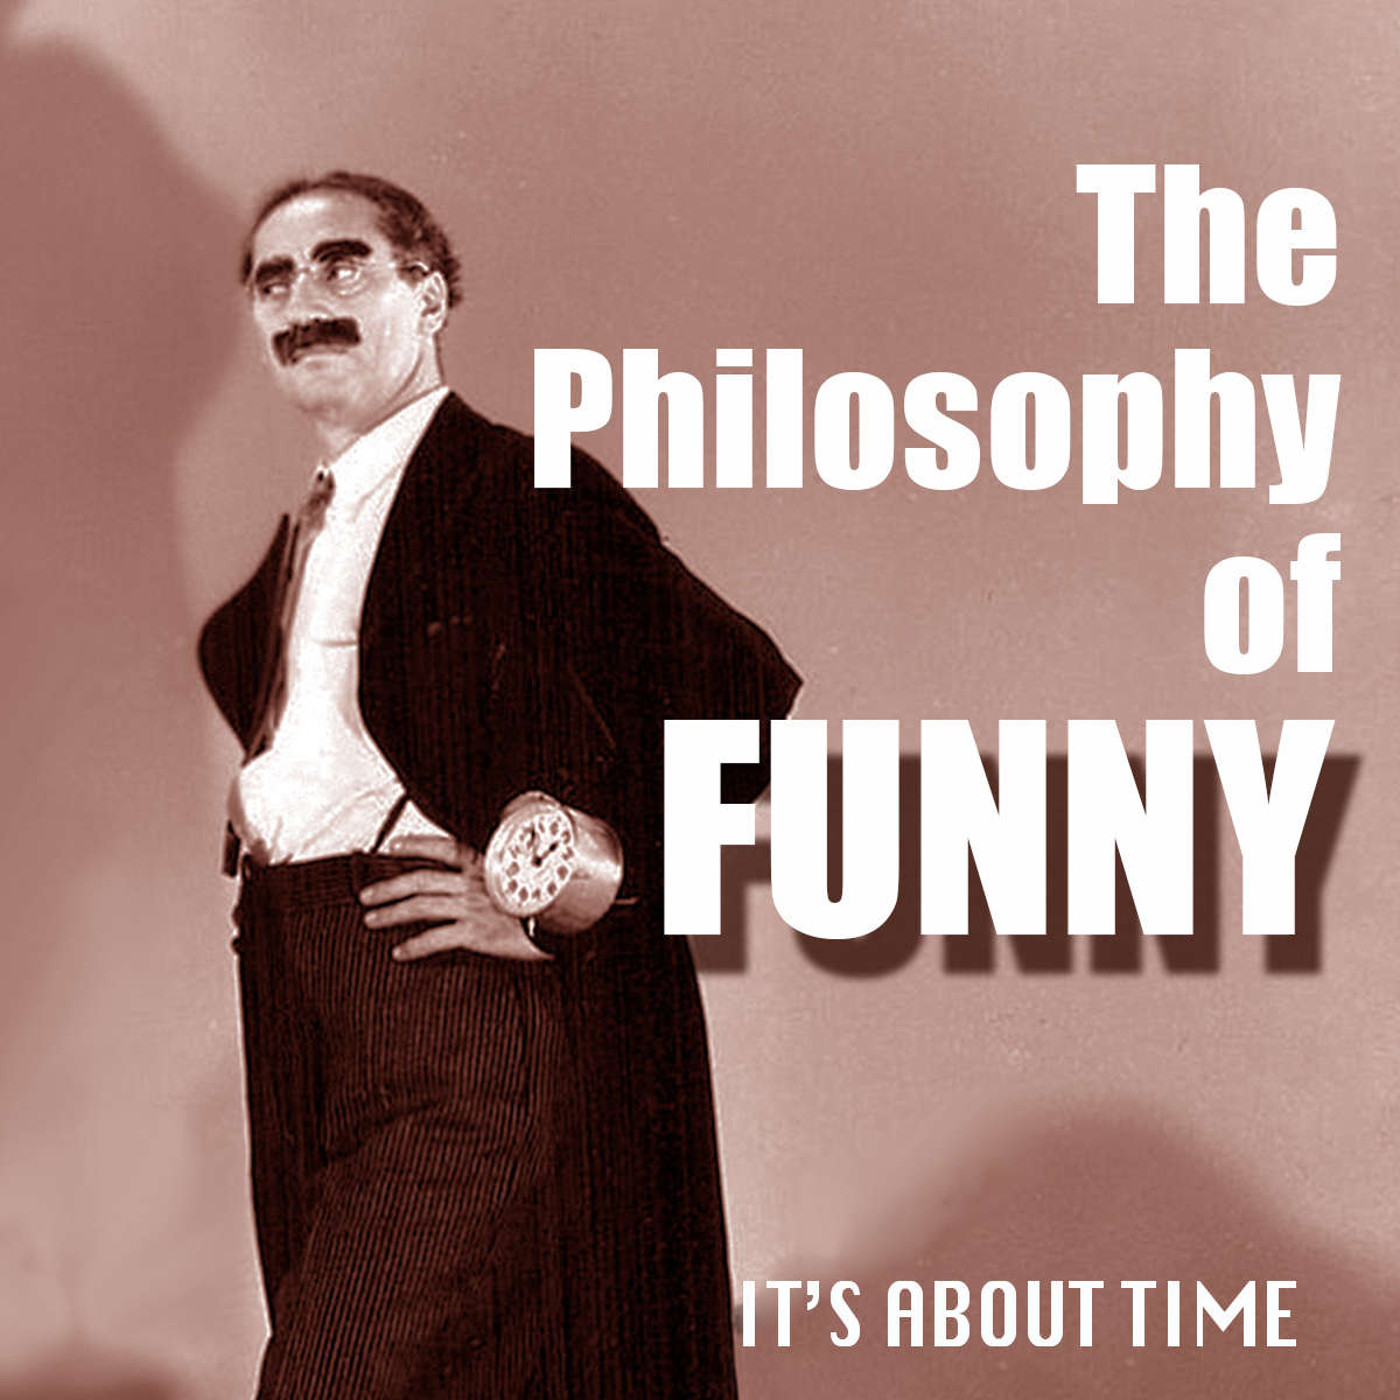 S01E08 - The Philosophy Of Funny - The birth of comedy with the Marx Brothers